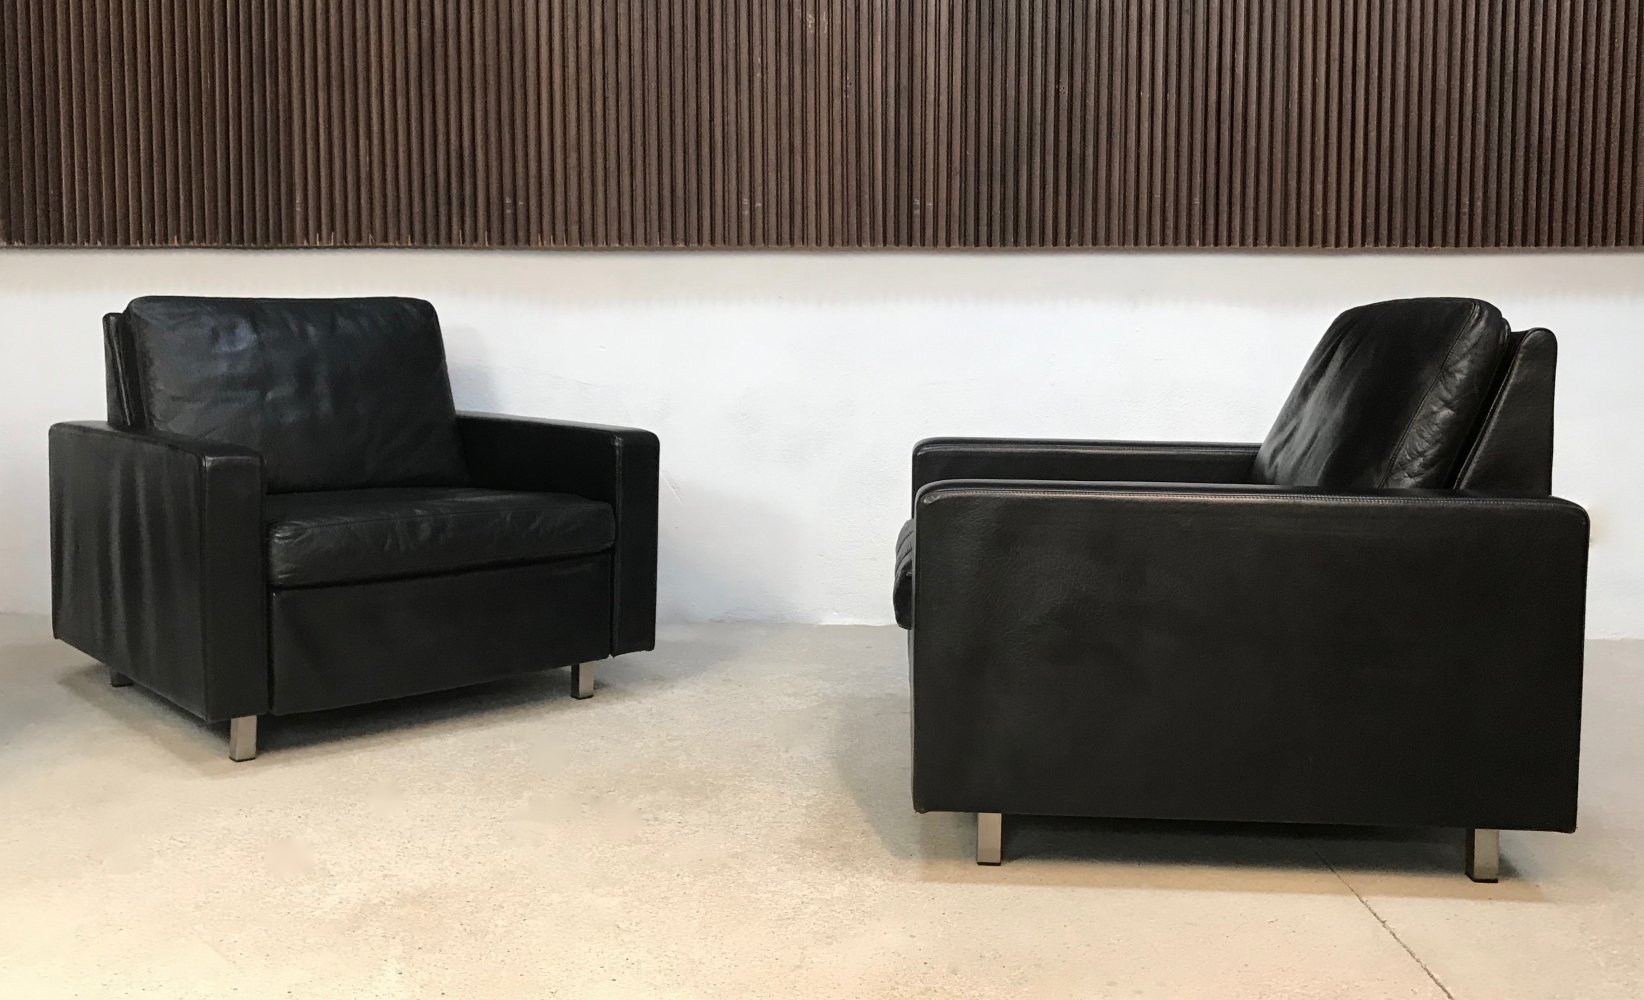 German Conseta Leather Lounge Chair by Friedrich W. Möller for COR, 1960s